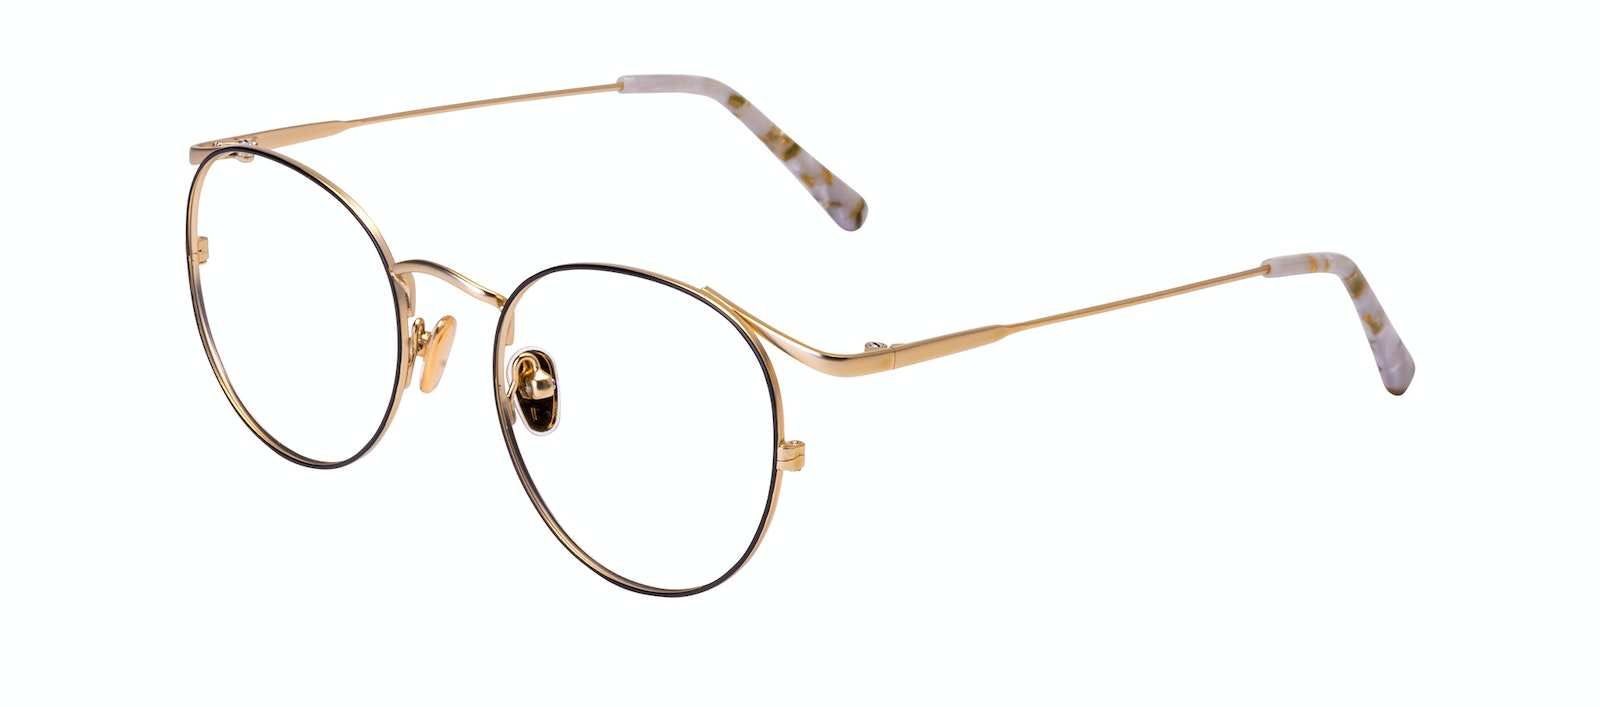 Affordable Fashion Glasses Round Eyeglasses Women Curve Deep Gold Tilt